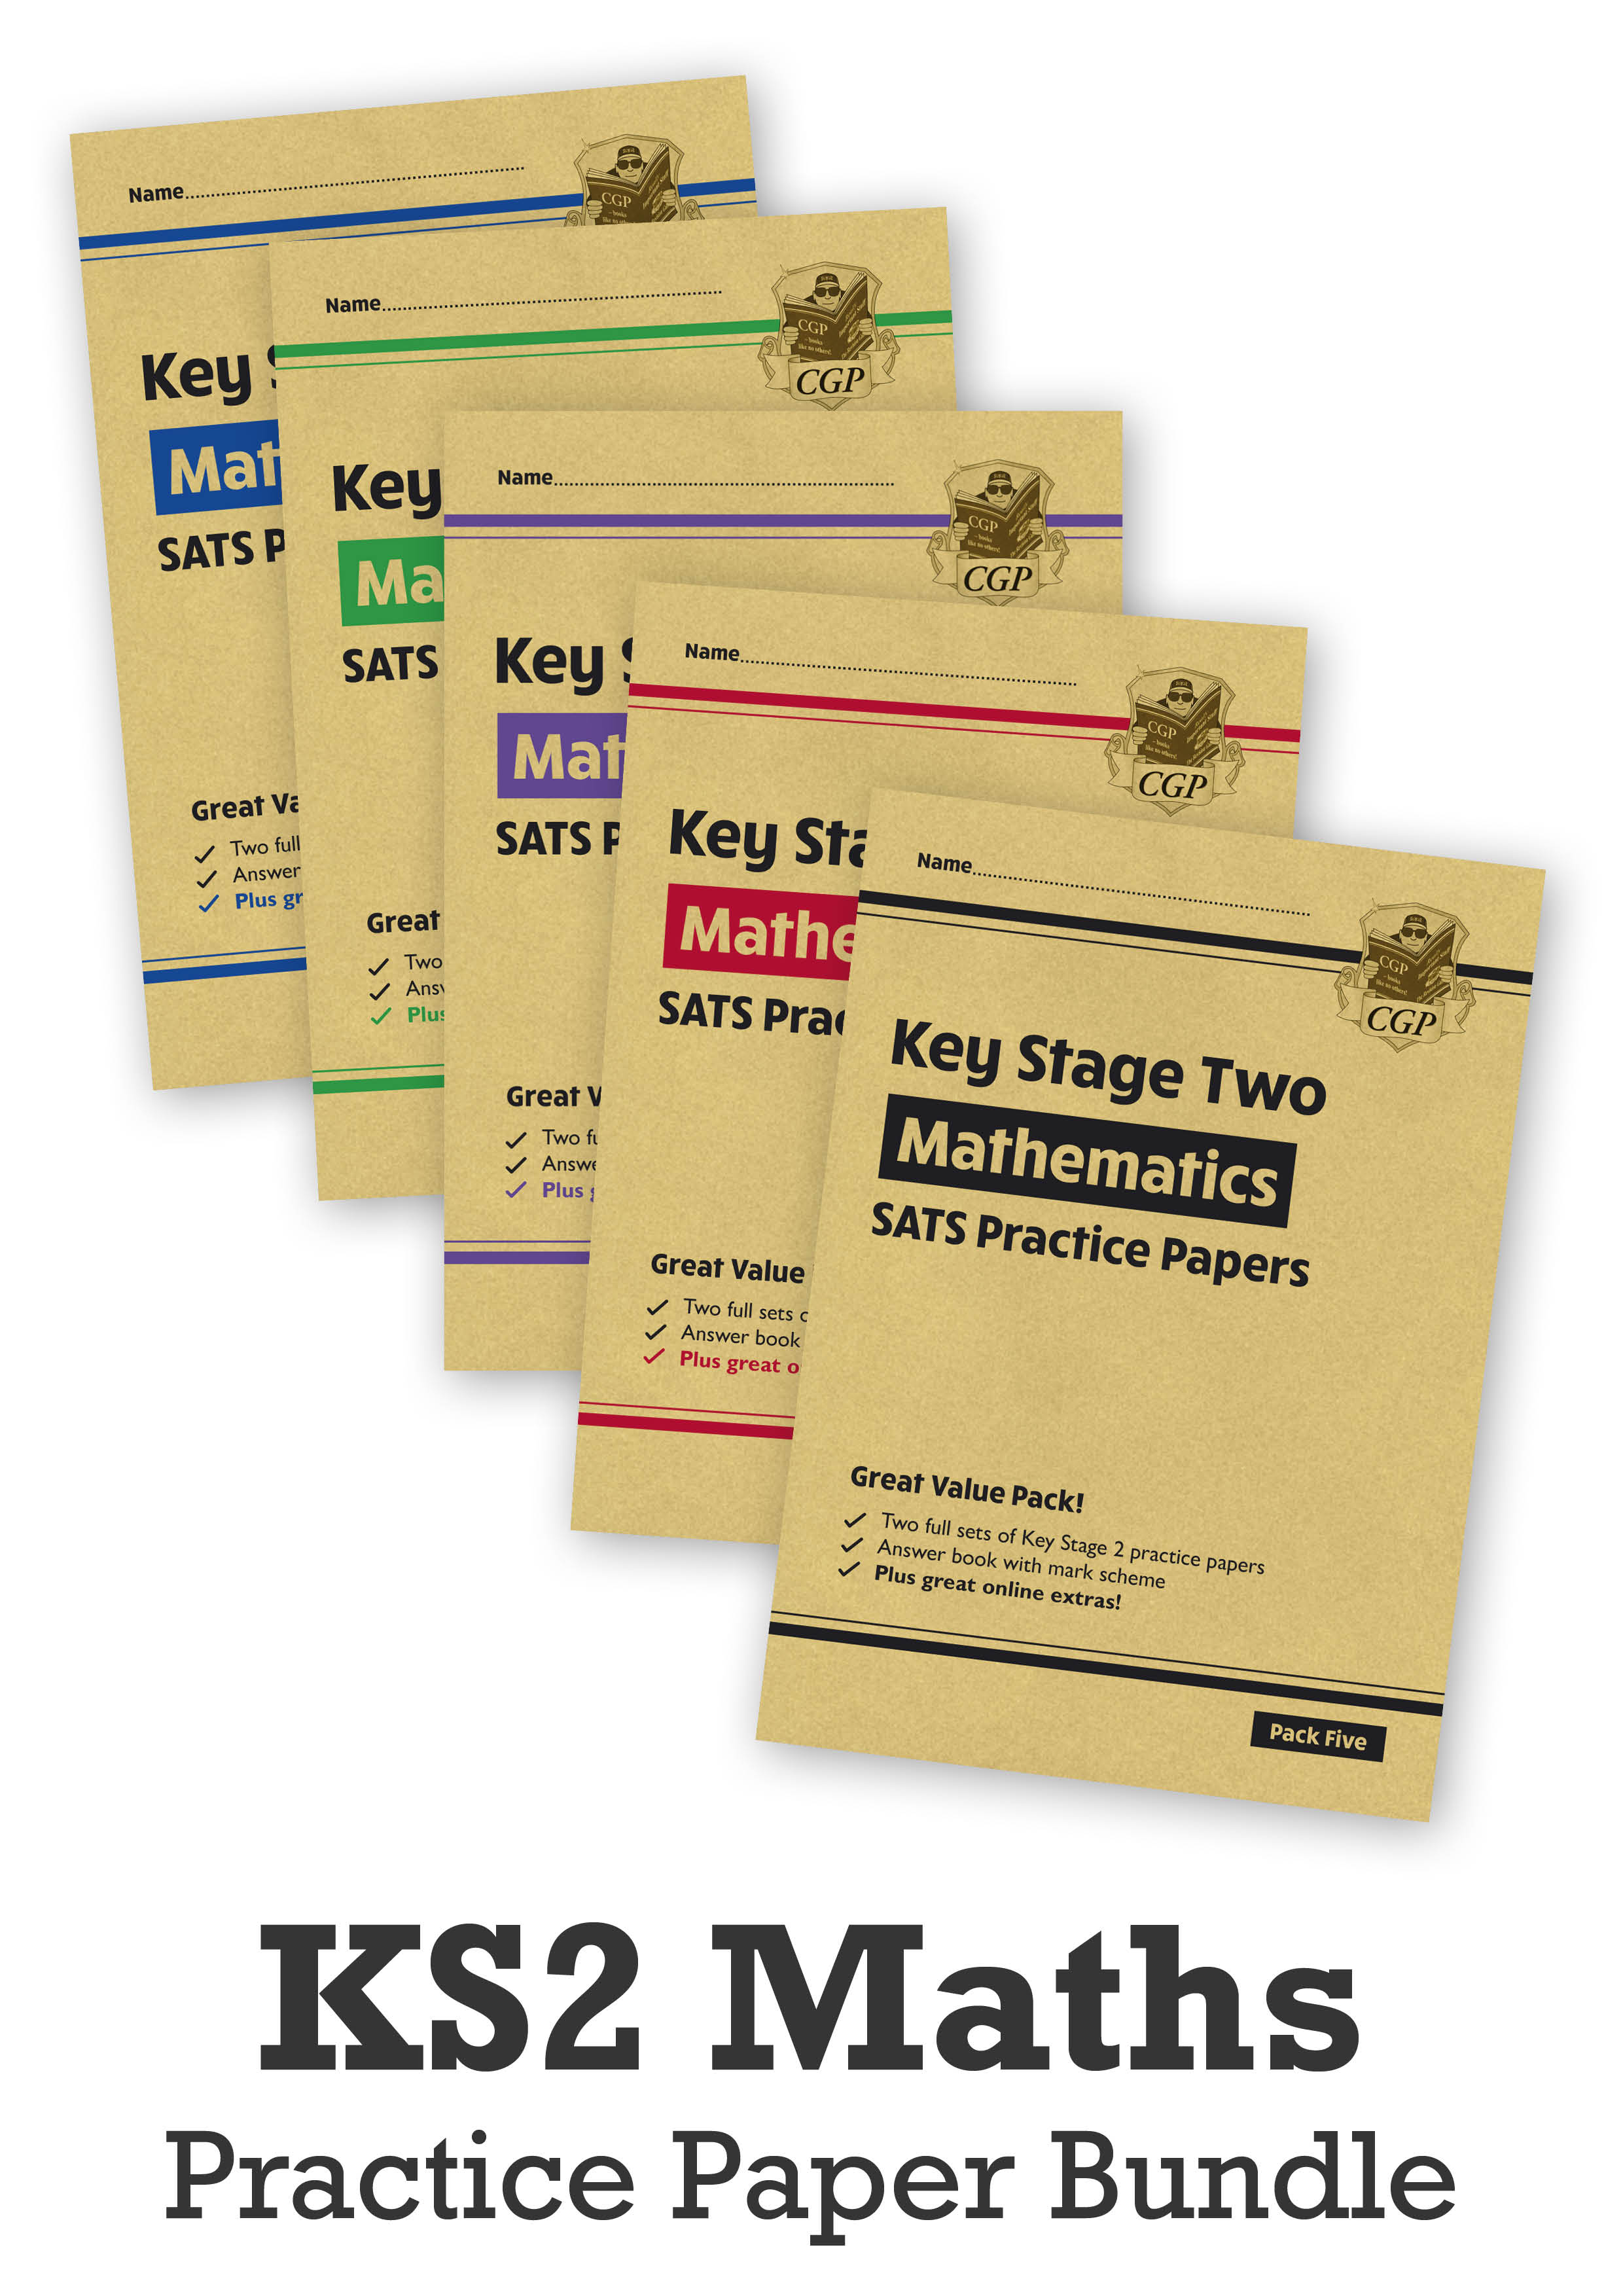 MHB5P24 - KS2 Maths SATS Practice Paper Bundle: Packs 1, 2, 3, 4 & 5 - for the 2021 tests (with Onli